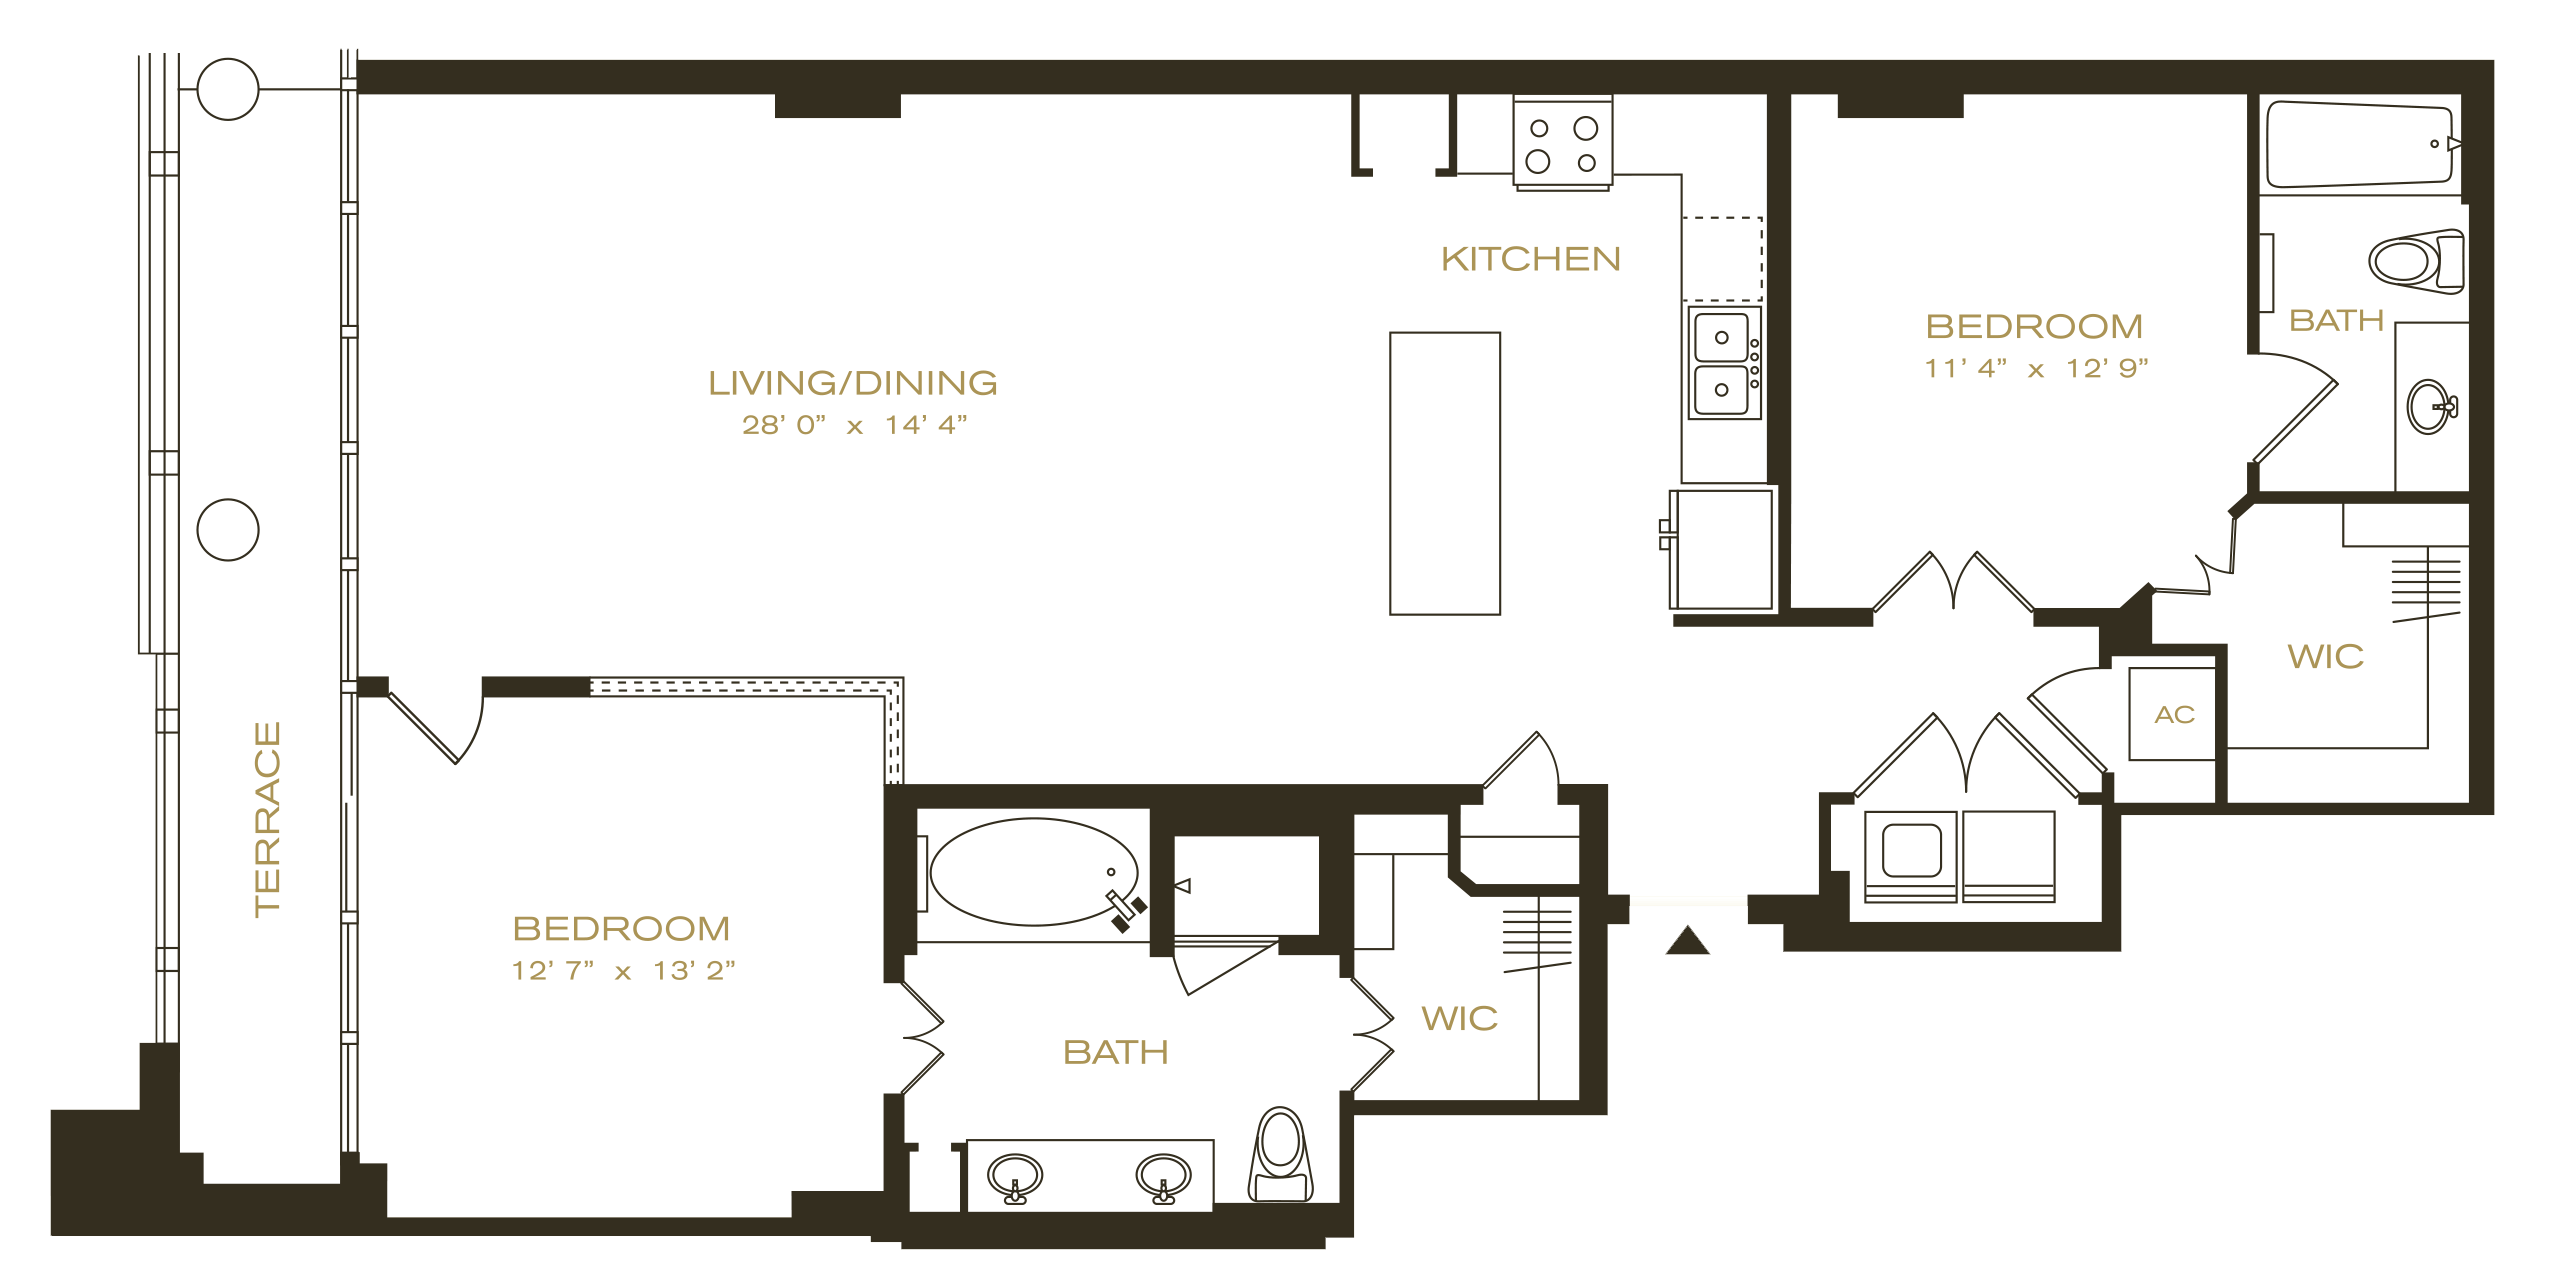 Uptown Dallas Apartments The Ashton Home 2010 Town And Country 3 8 Engine Diagram Penthouse